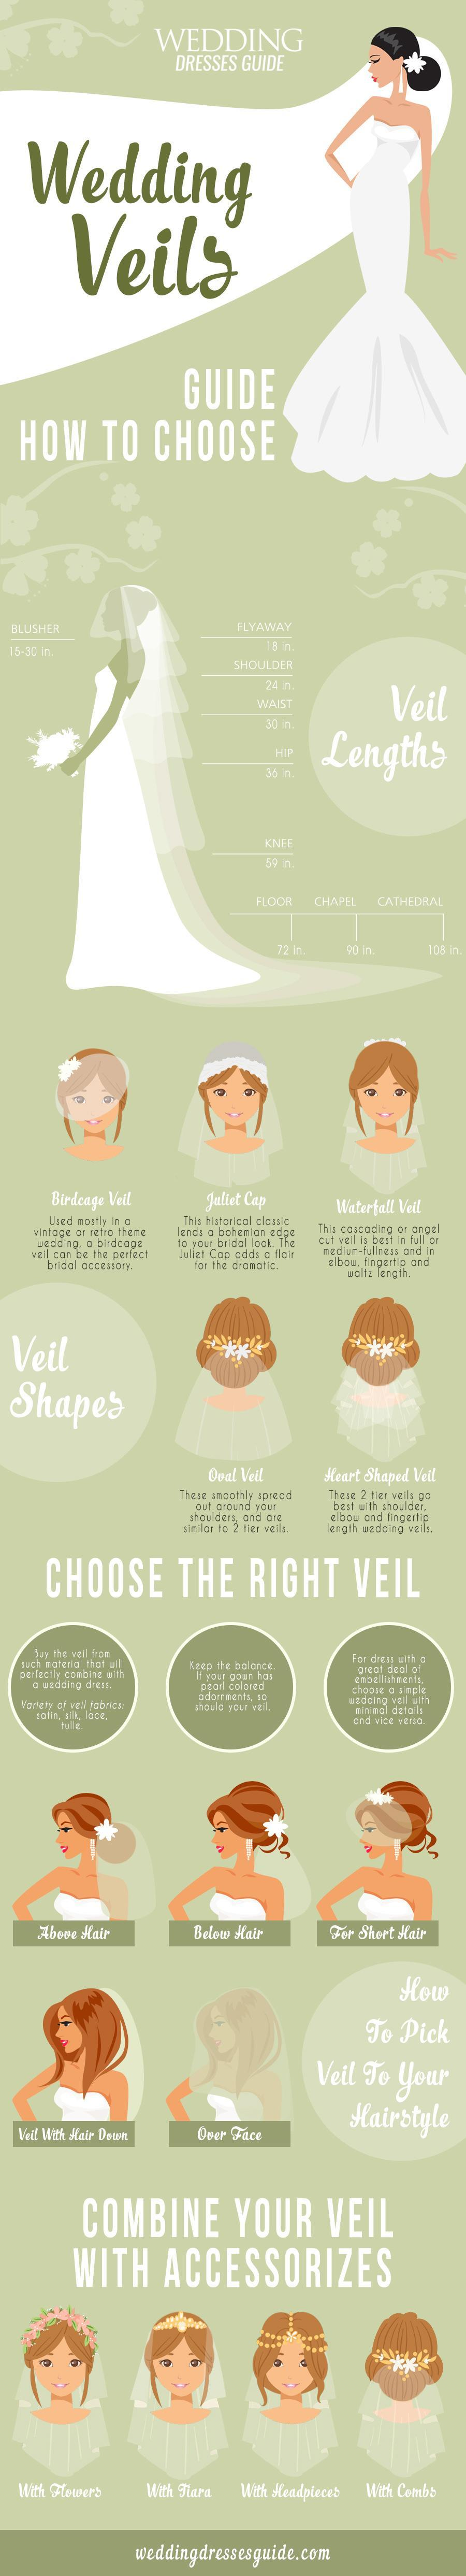 wedding veils guide how to choose